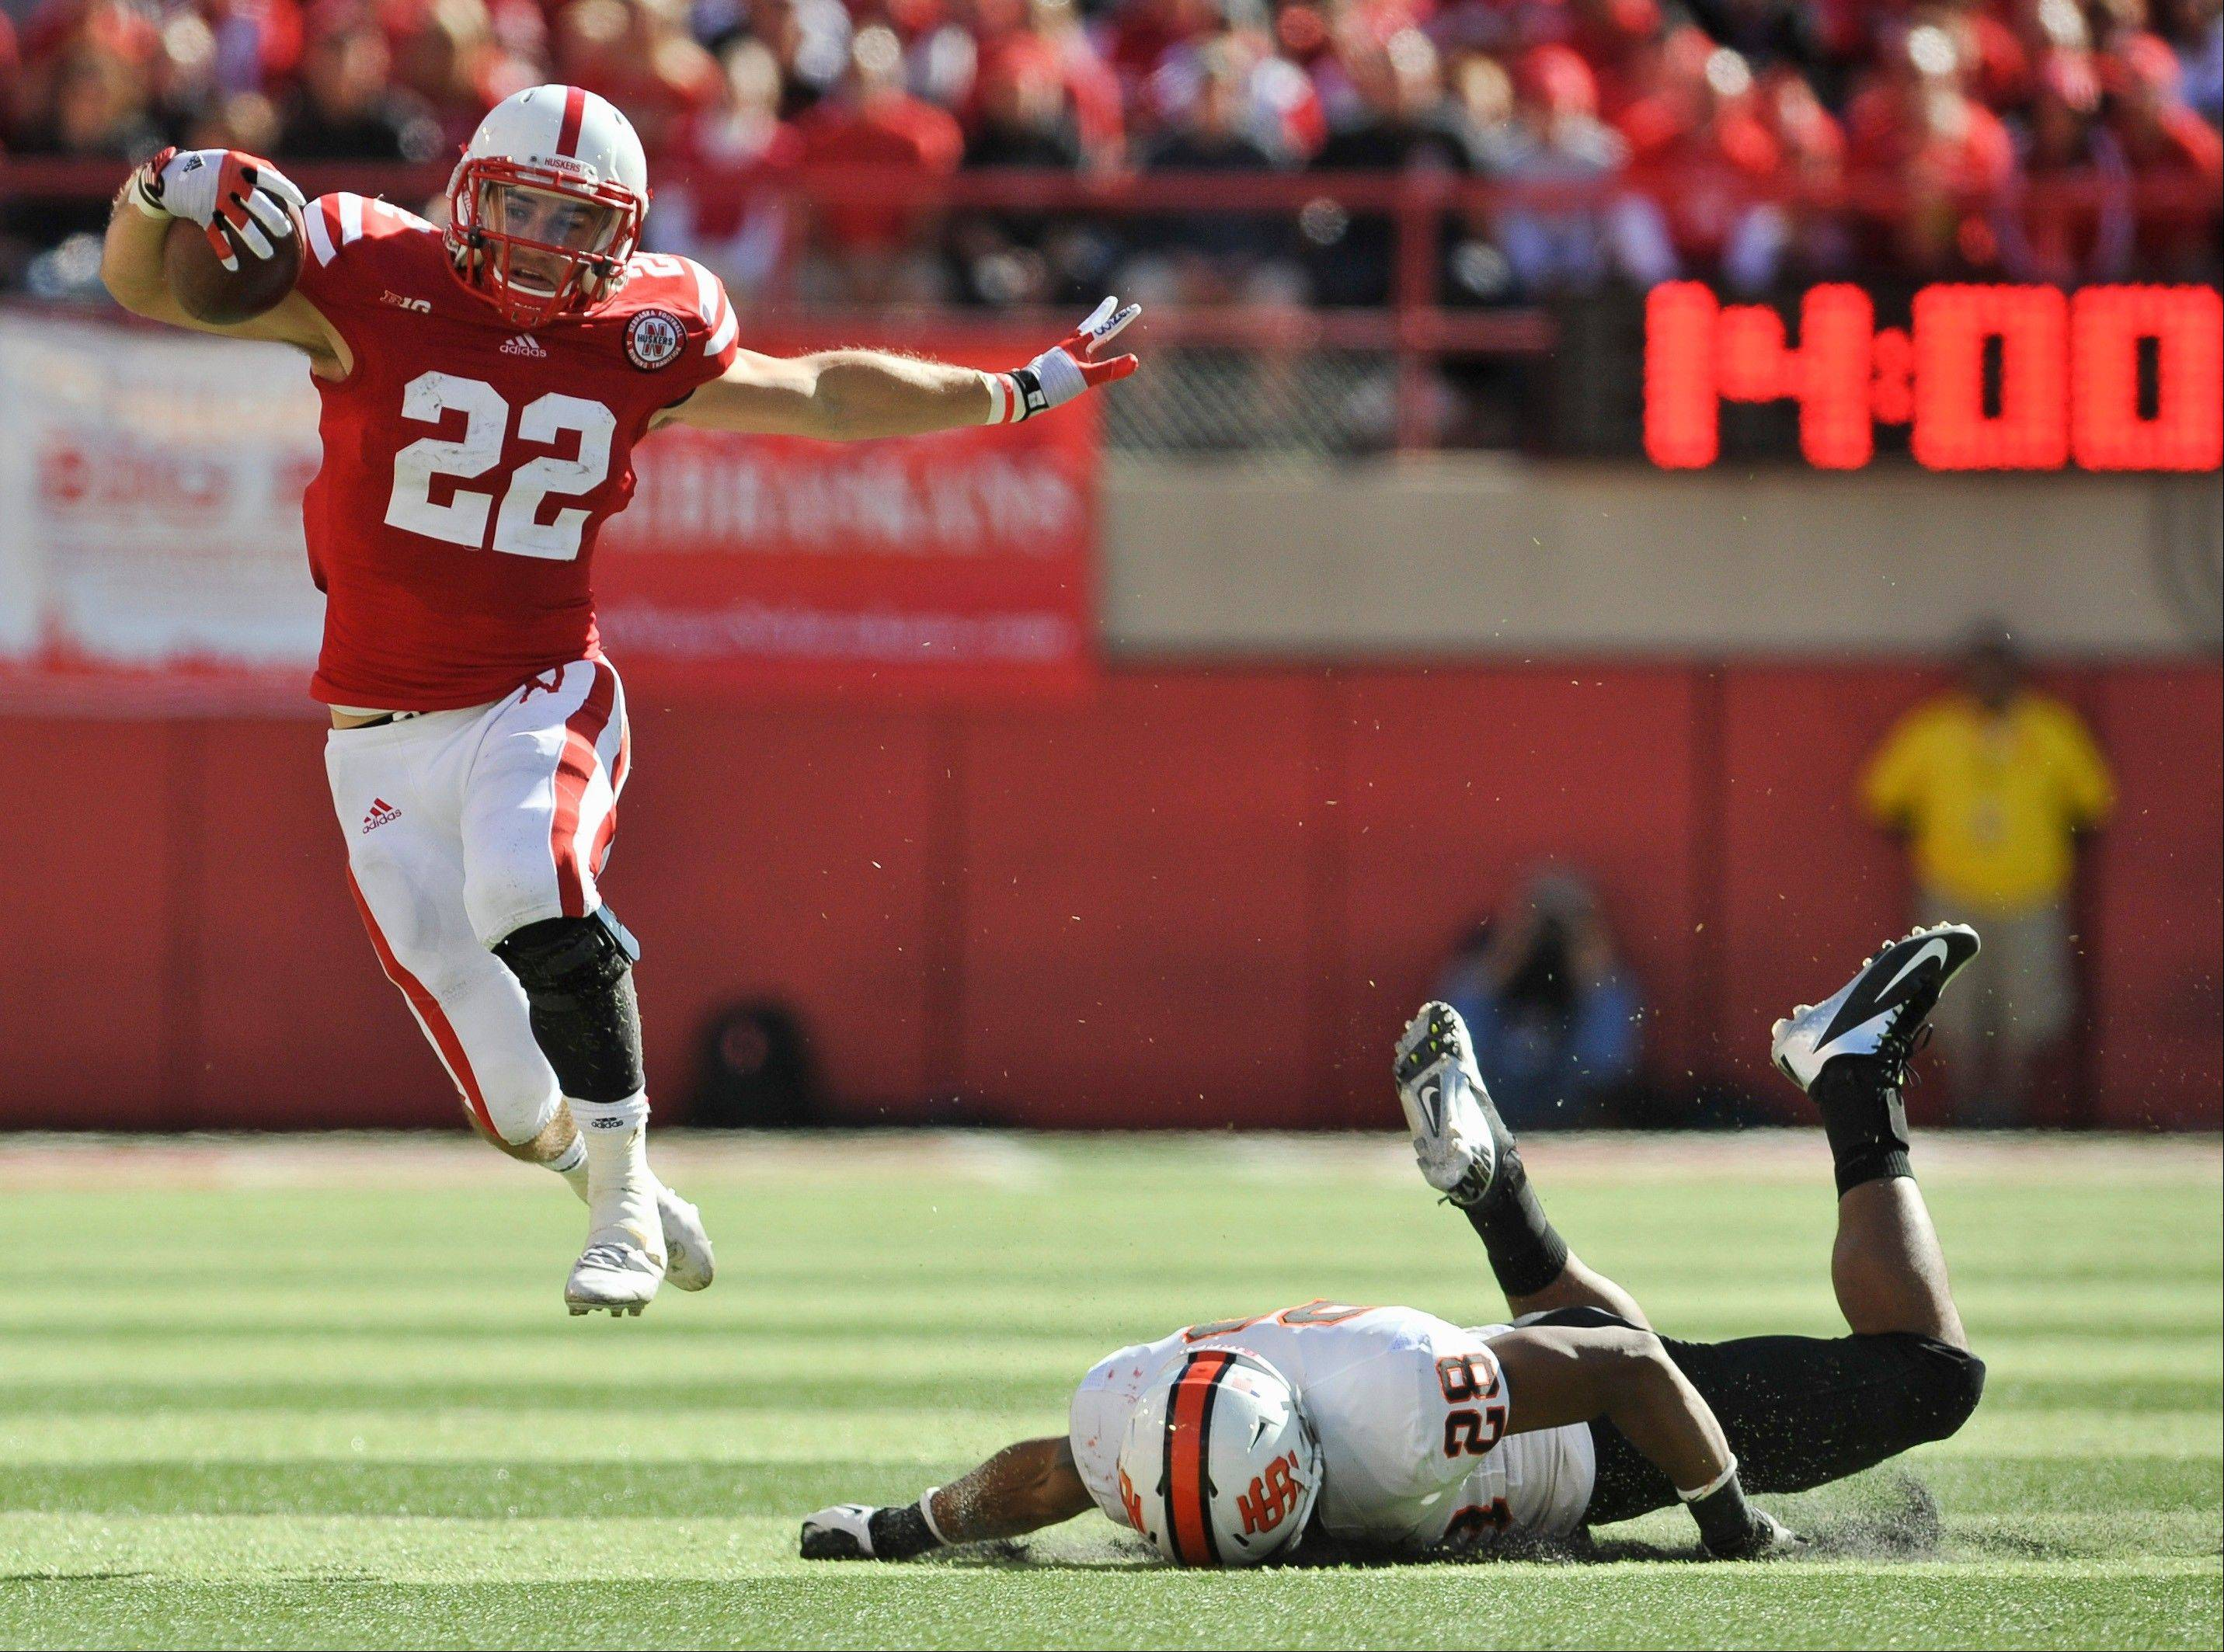 Nebraska's Rex Burkhead eluds a tackle by Idaho State's Cameron Gupton last Saturday in Lincoln, Neb.